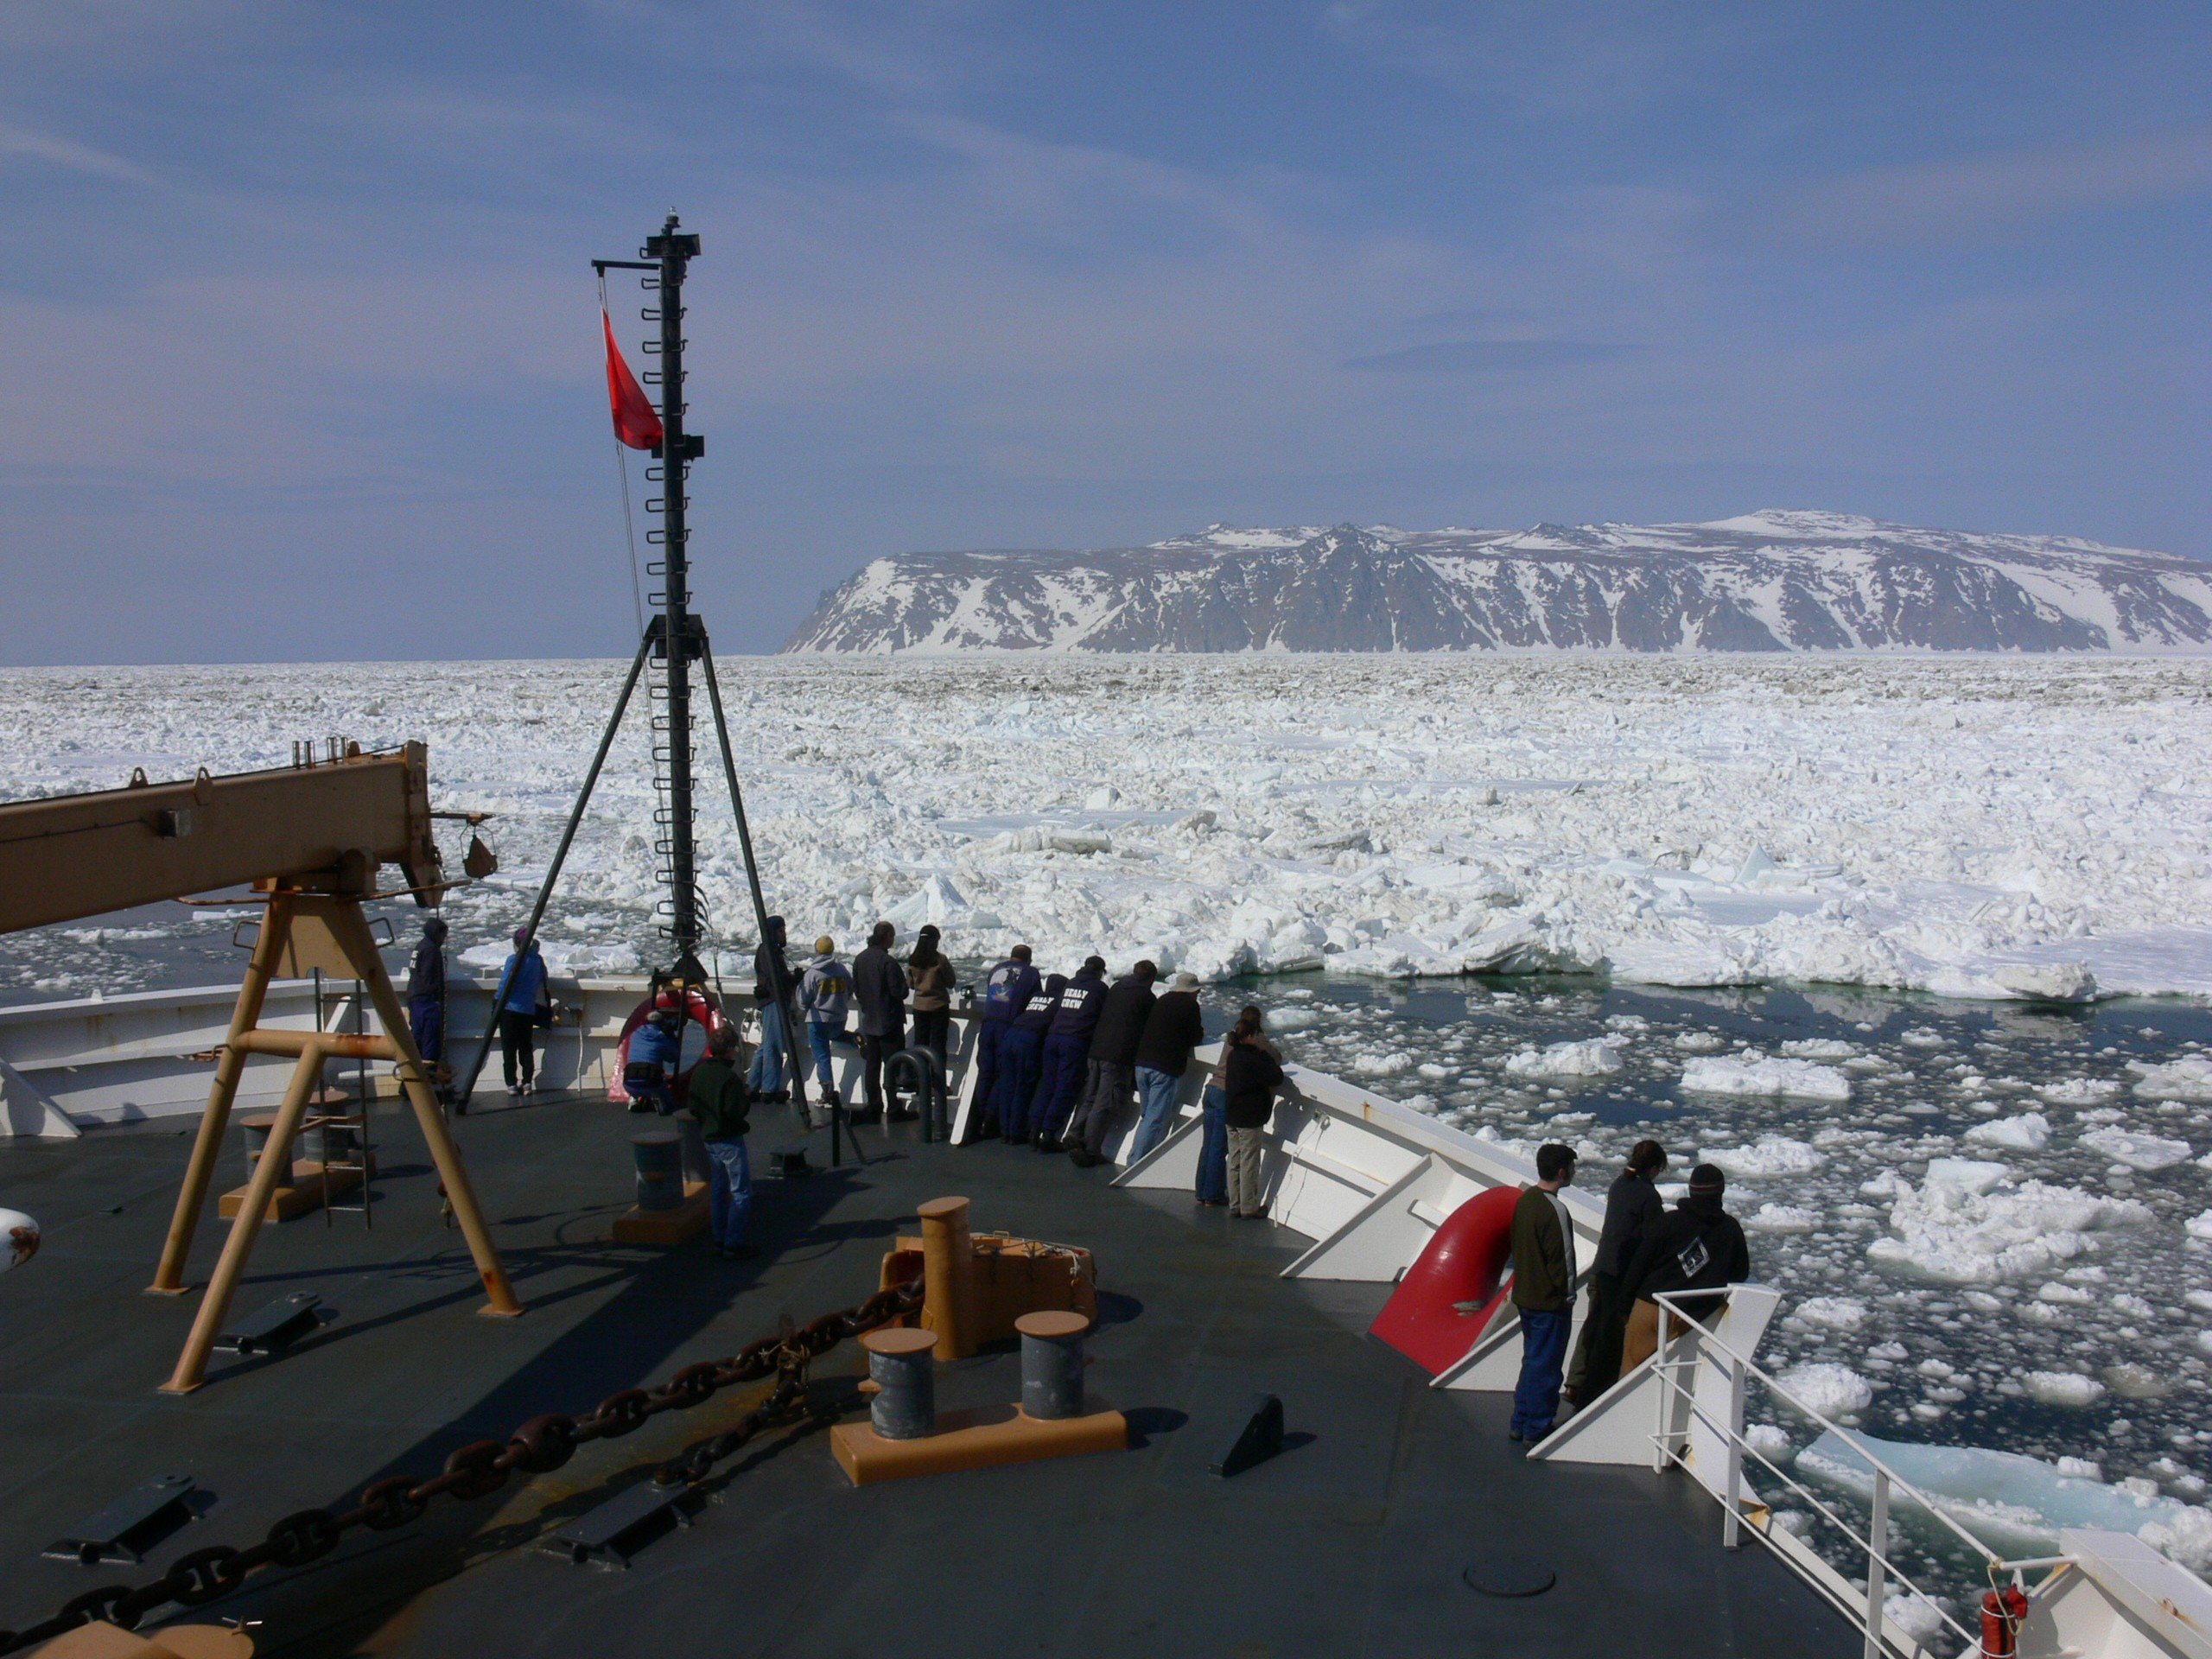 view of bering strait from aboard a research vessel